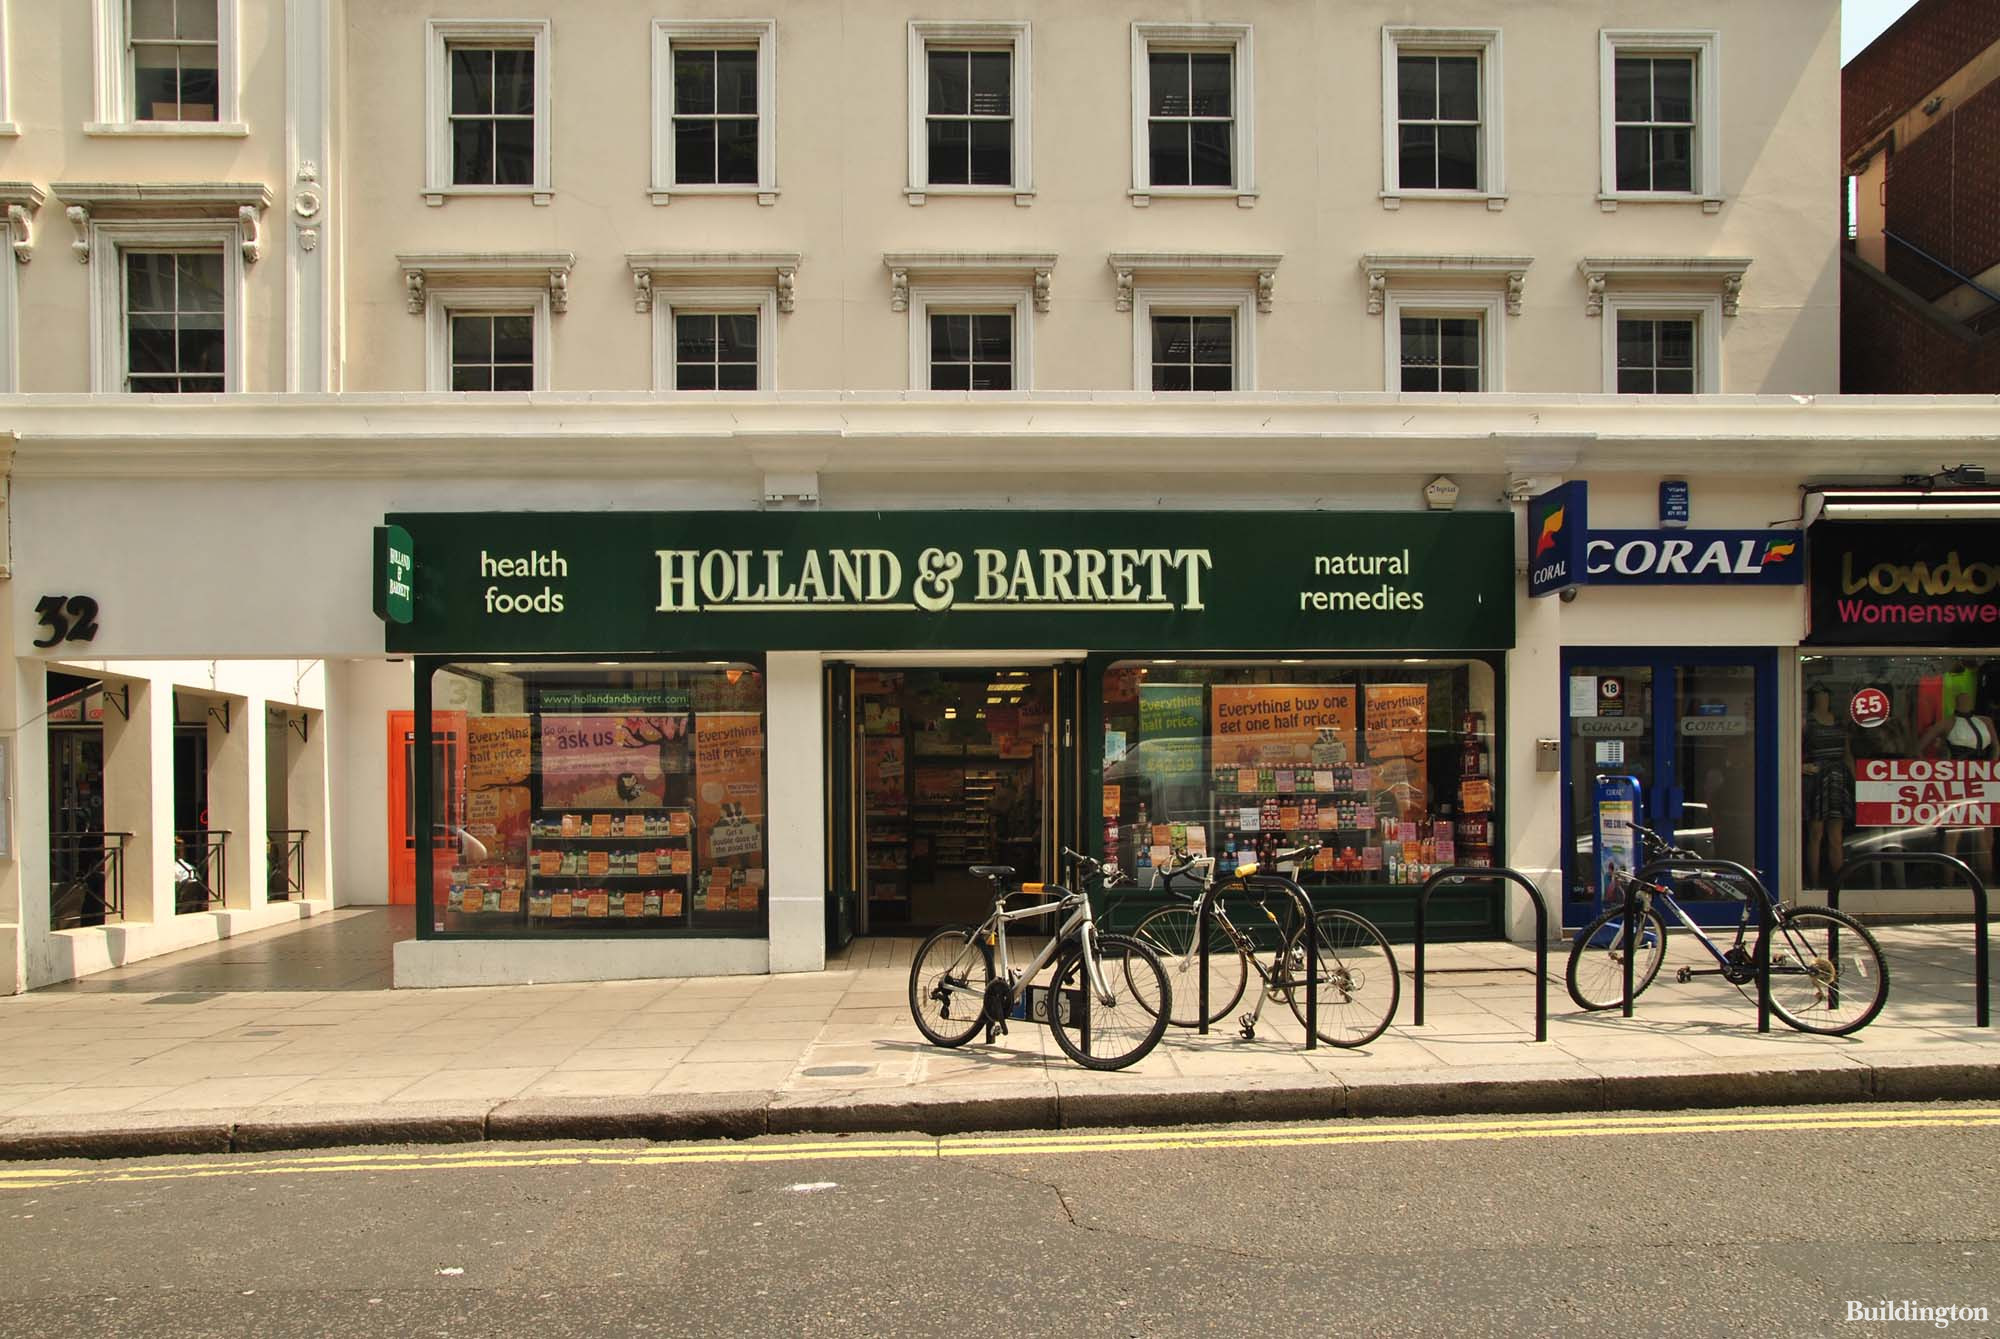 Holland and Barrett store at 32 Queensway in Bayswater, London W2.